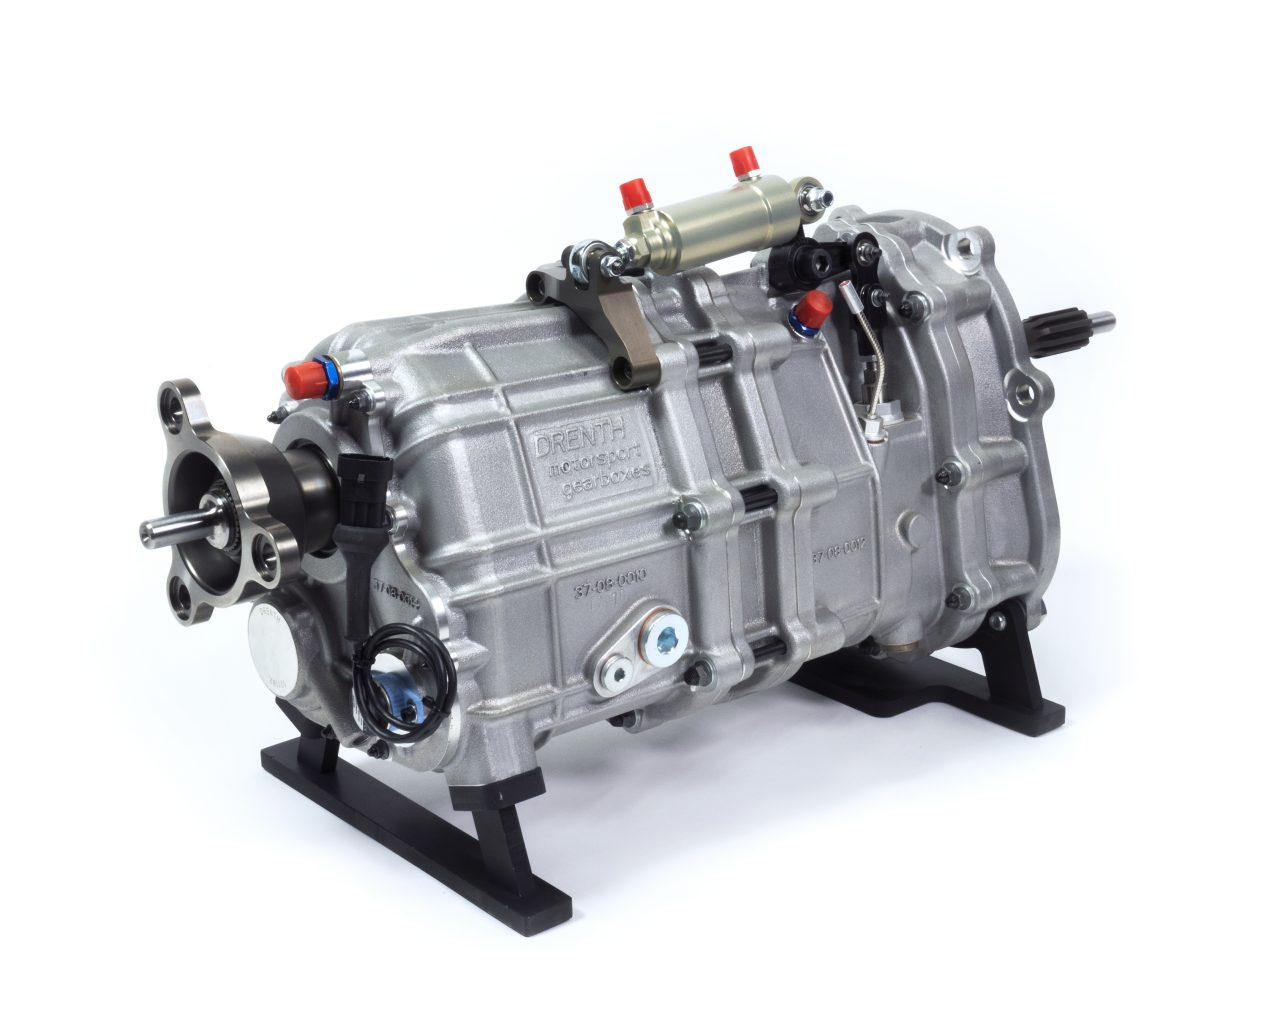 Drenth DG500 Sequential 6 Speed Gearbox